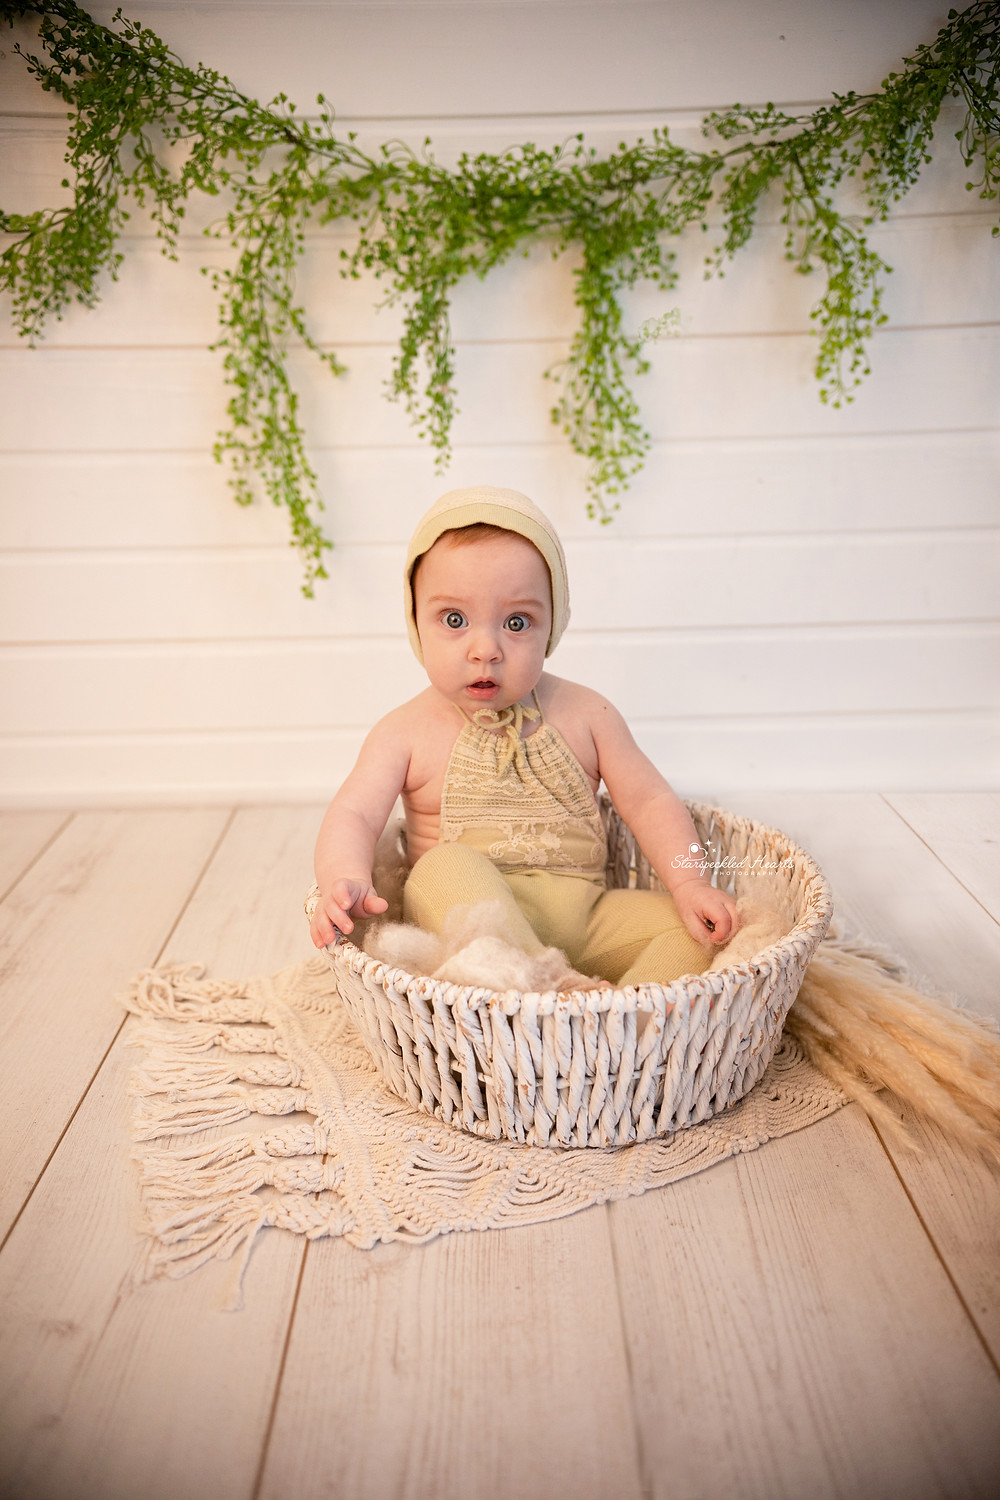 adorable baby girl wearing a lime green romper and bonnet set, sitting in a basket